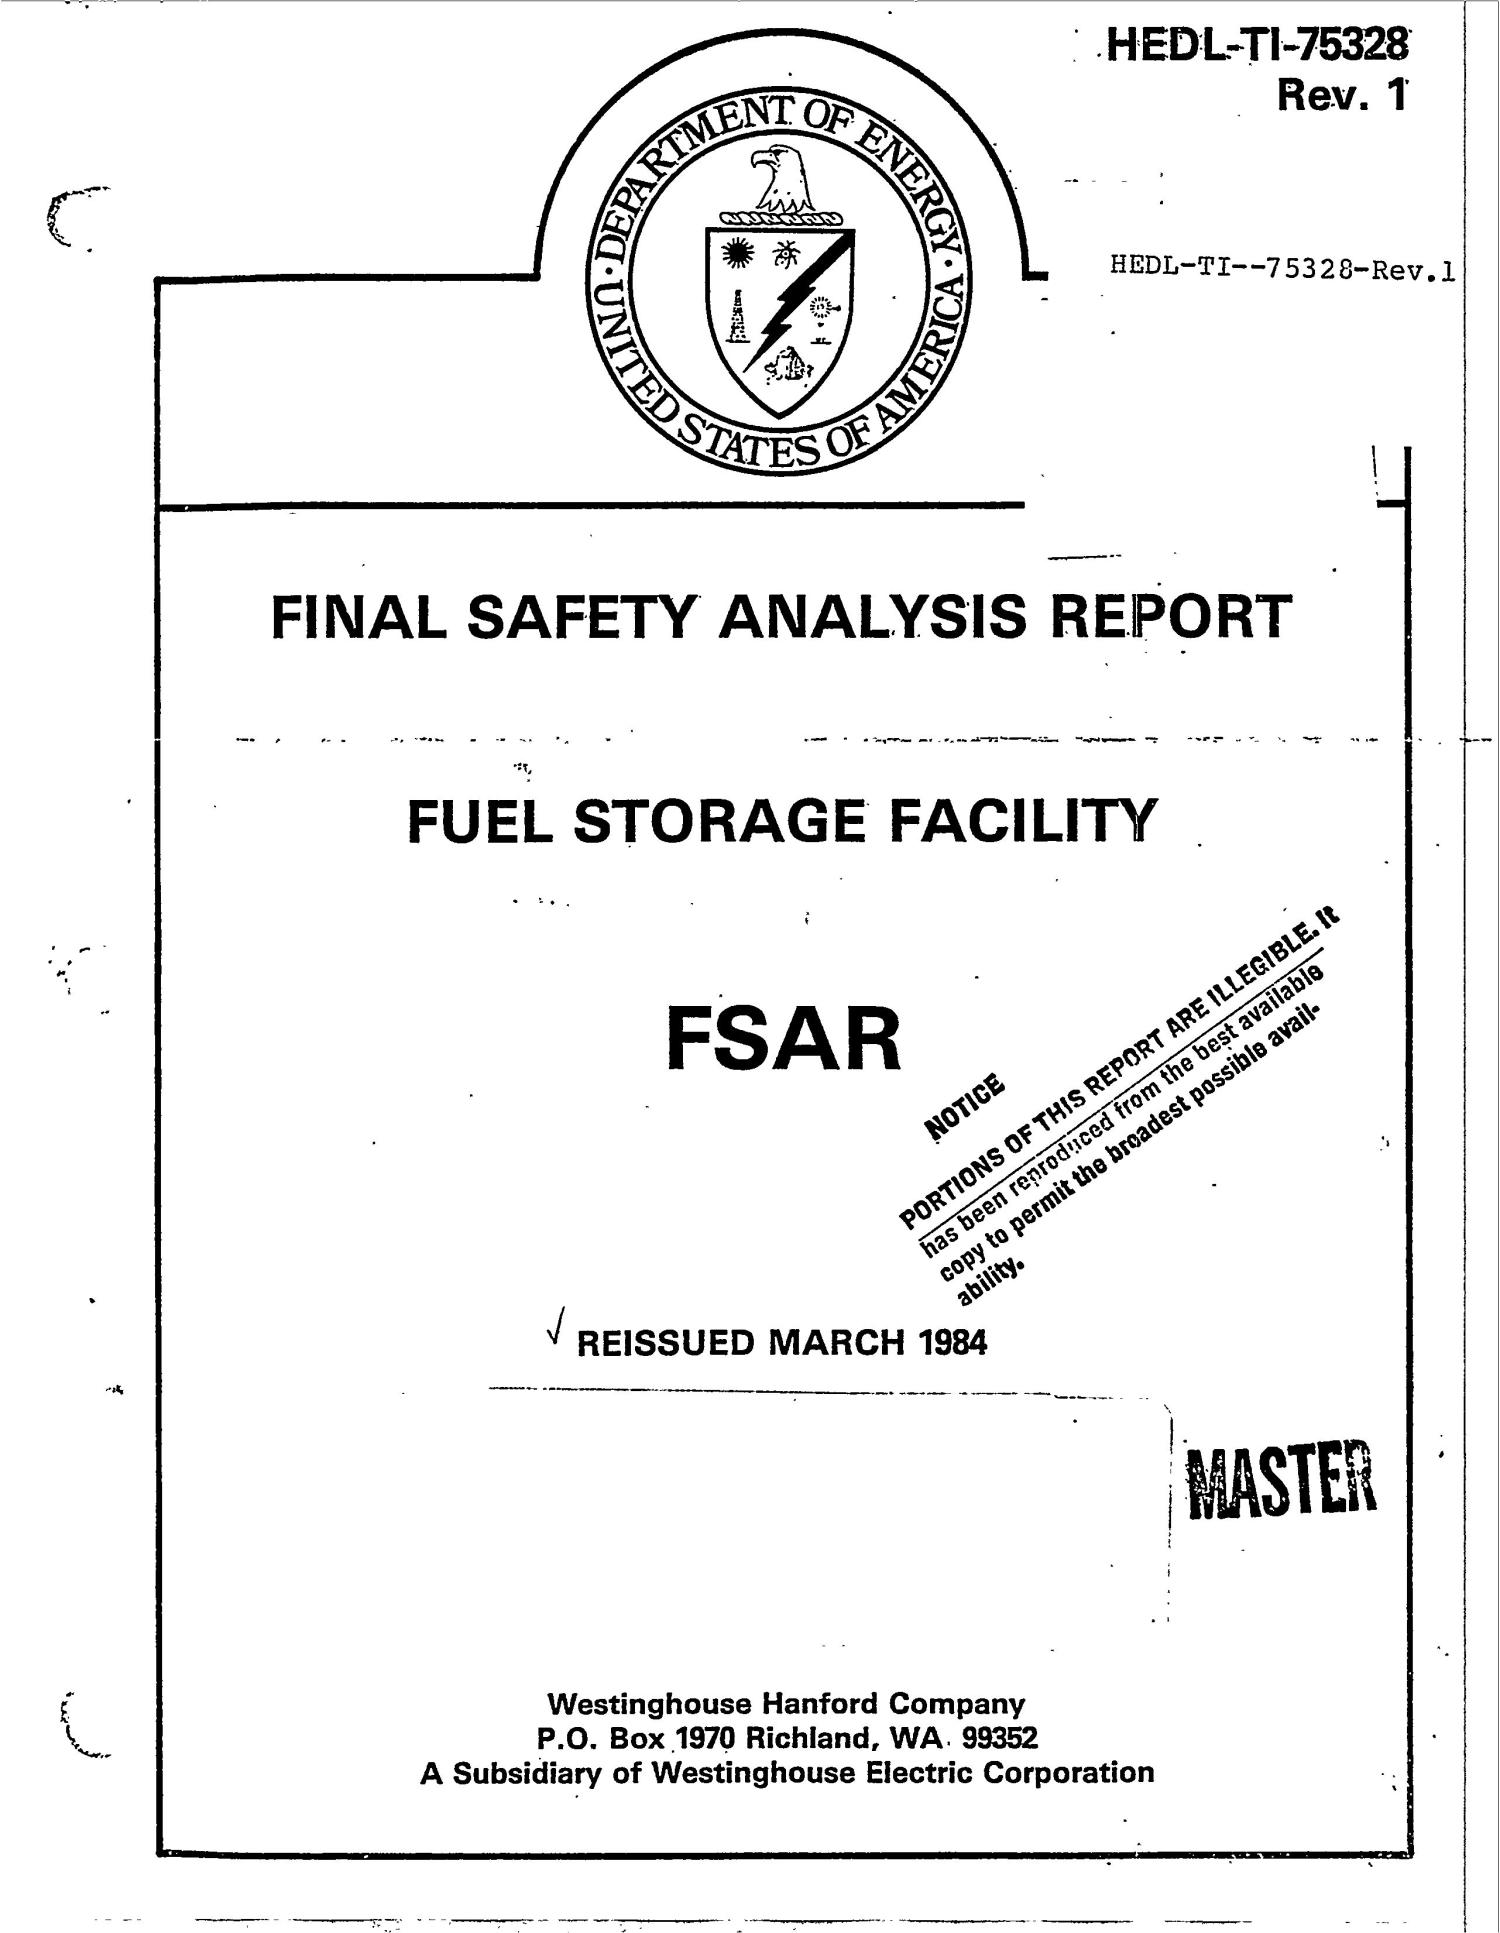 Fuel Storage Facility Final Safety Analysis Report. Revision 1                                                                                                      [Sequence #]: 1 of 604